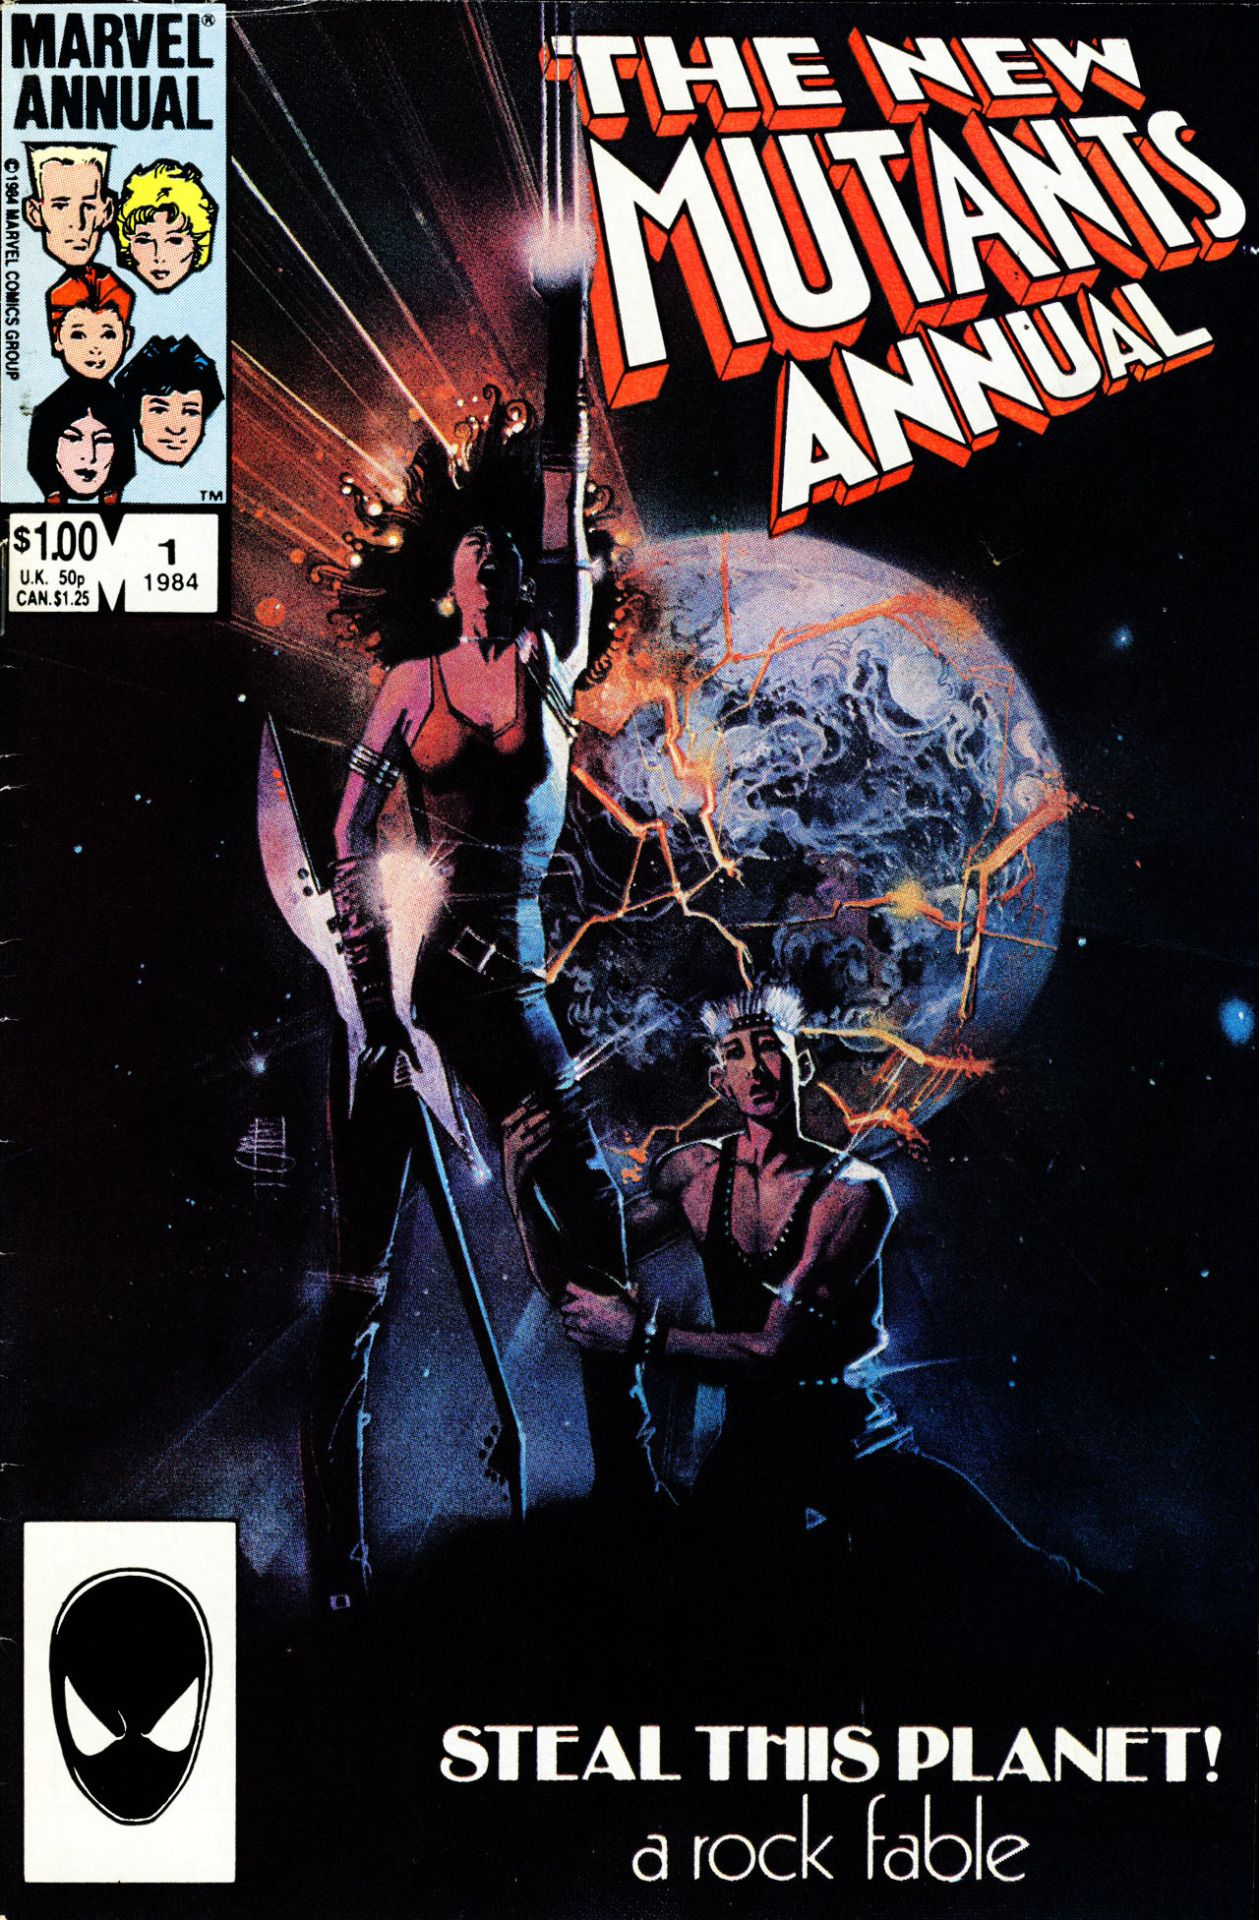 """Steal this planet!"" - The New Mutants Annual #1, 1984, cover by Bill Sienkiewicz"